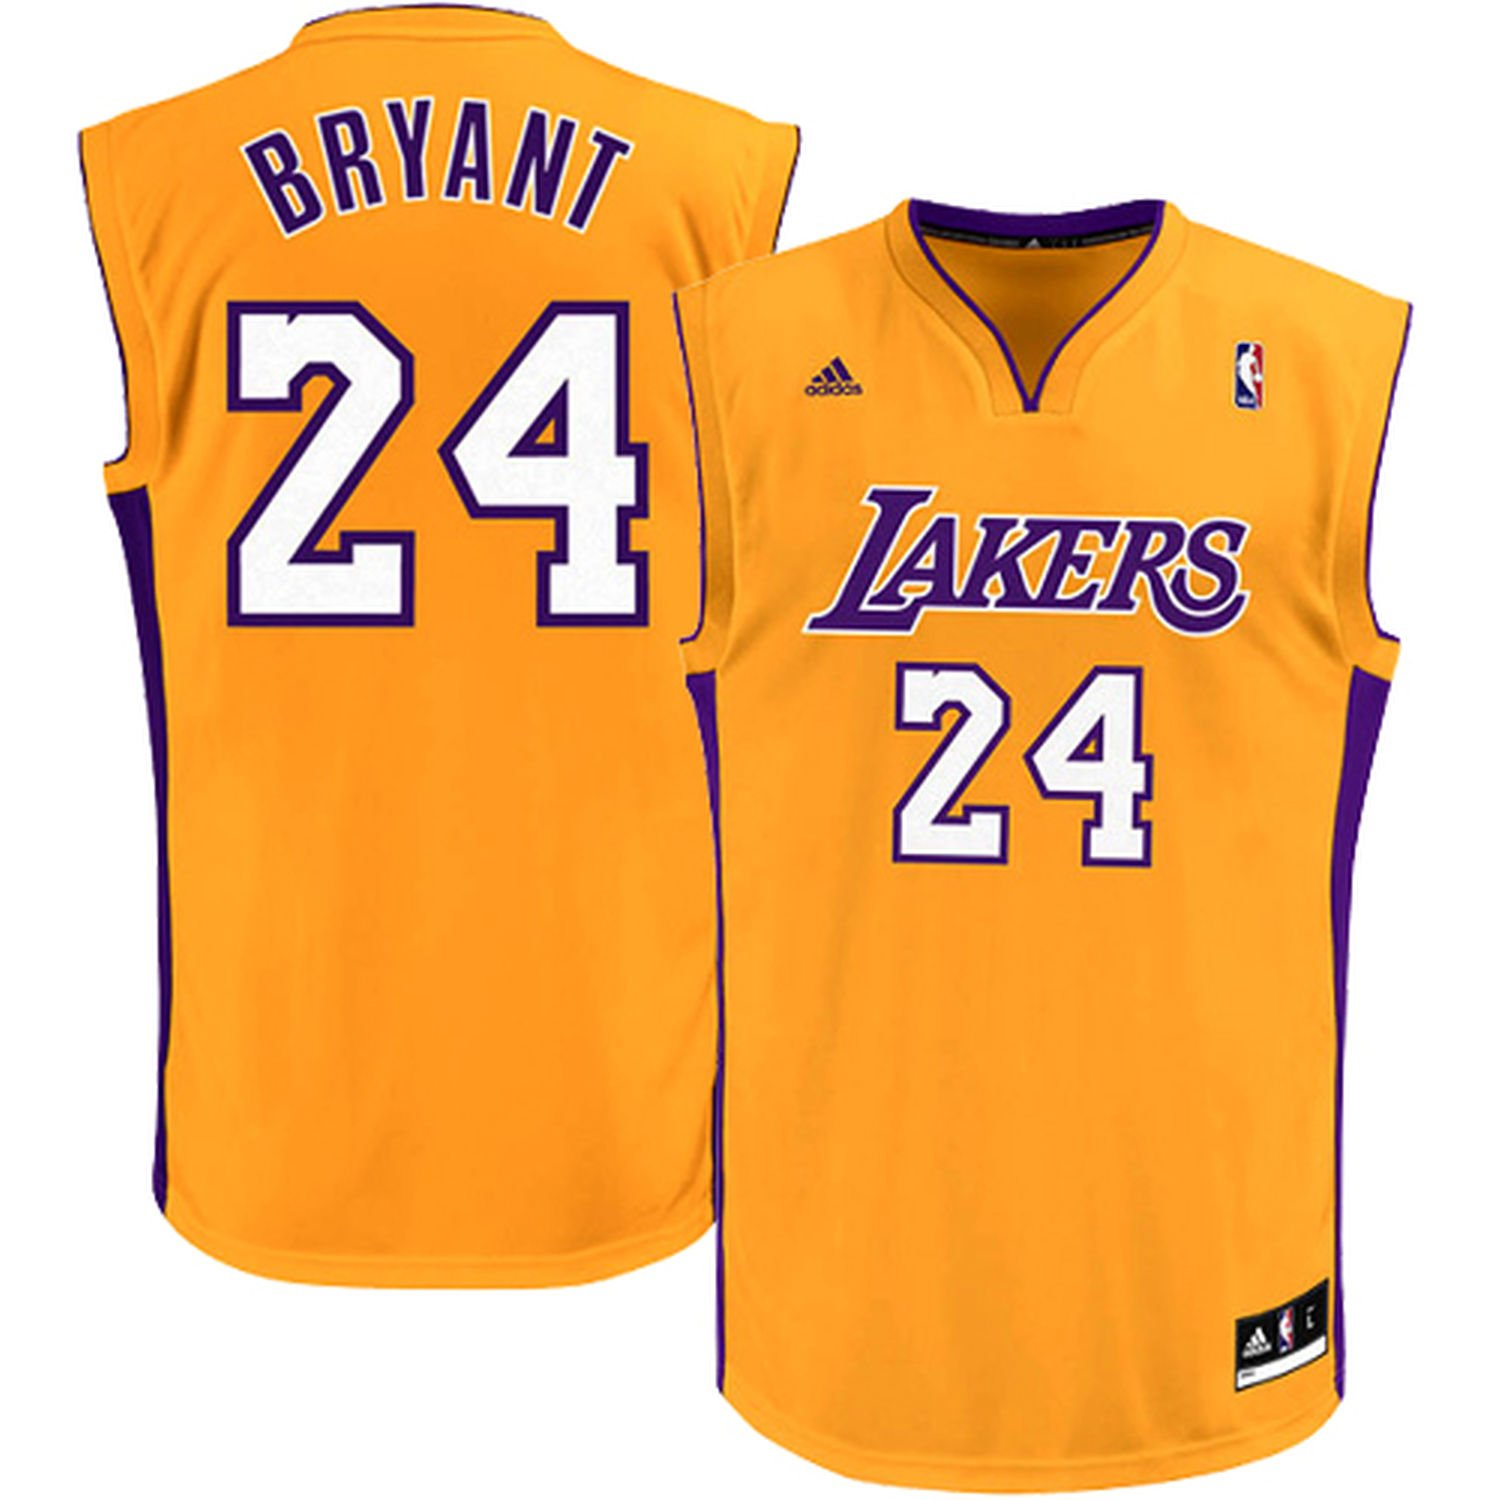 52e59633d Amazon.com  Kobe Bryant Los Angeles Lakers Yellow Kids Replica Jersey (Kids  5 6)  Clothing